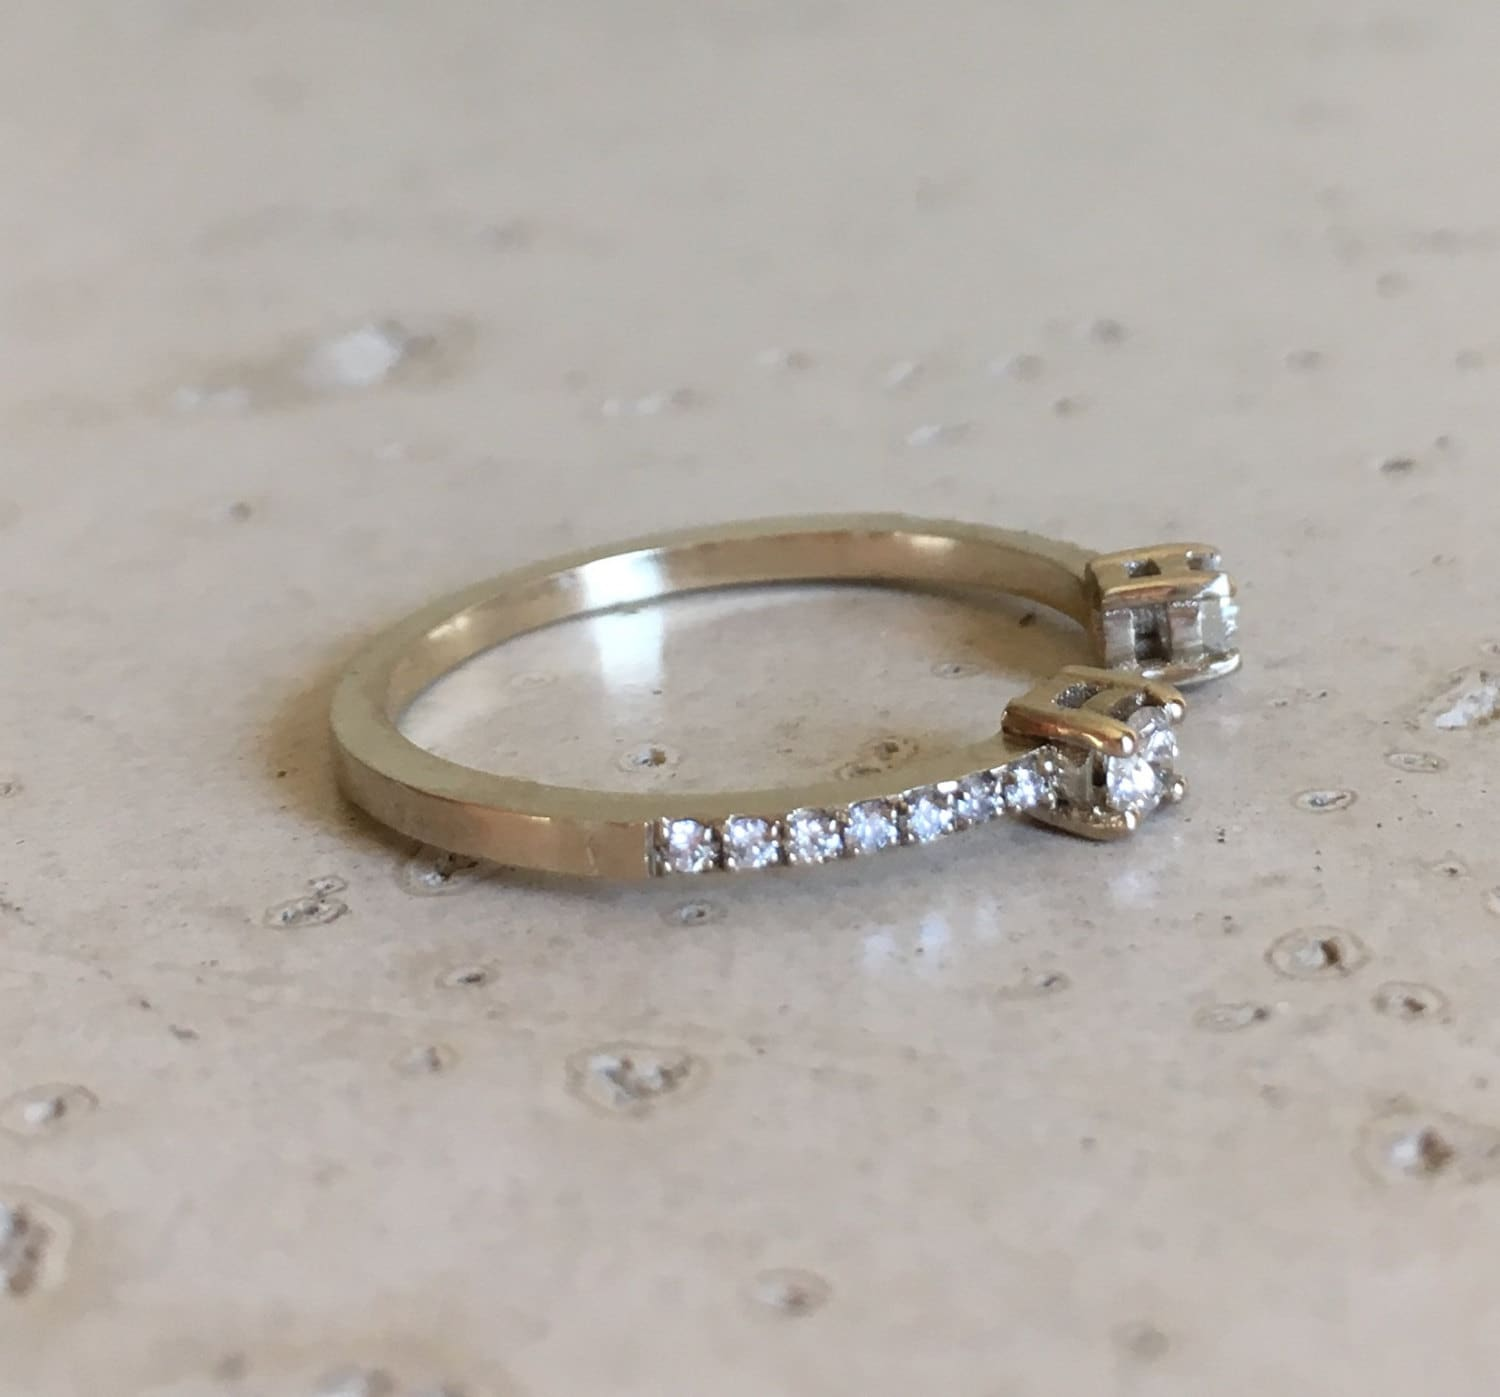 jewelry gift vintage and il anniversary full birthstone diamond estate bands stacking wedding gold ring listing band fullxfull april